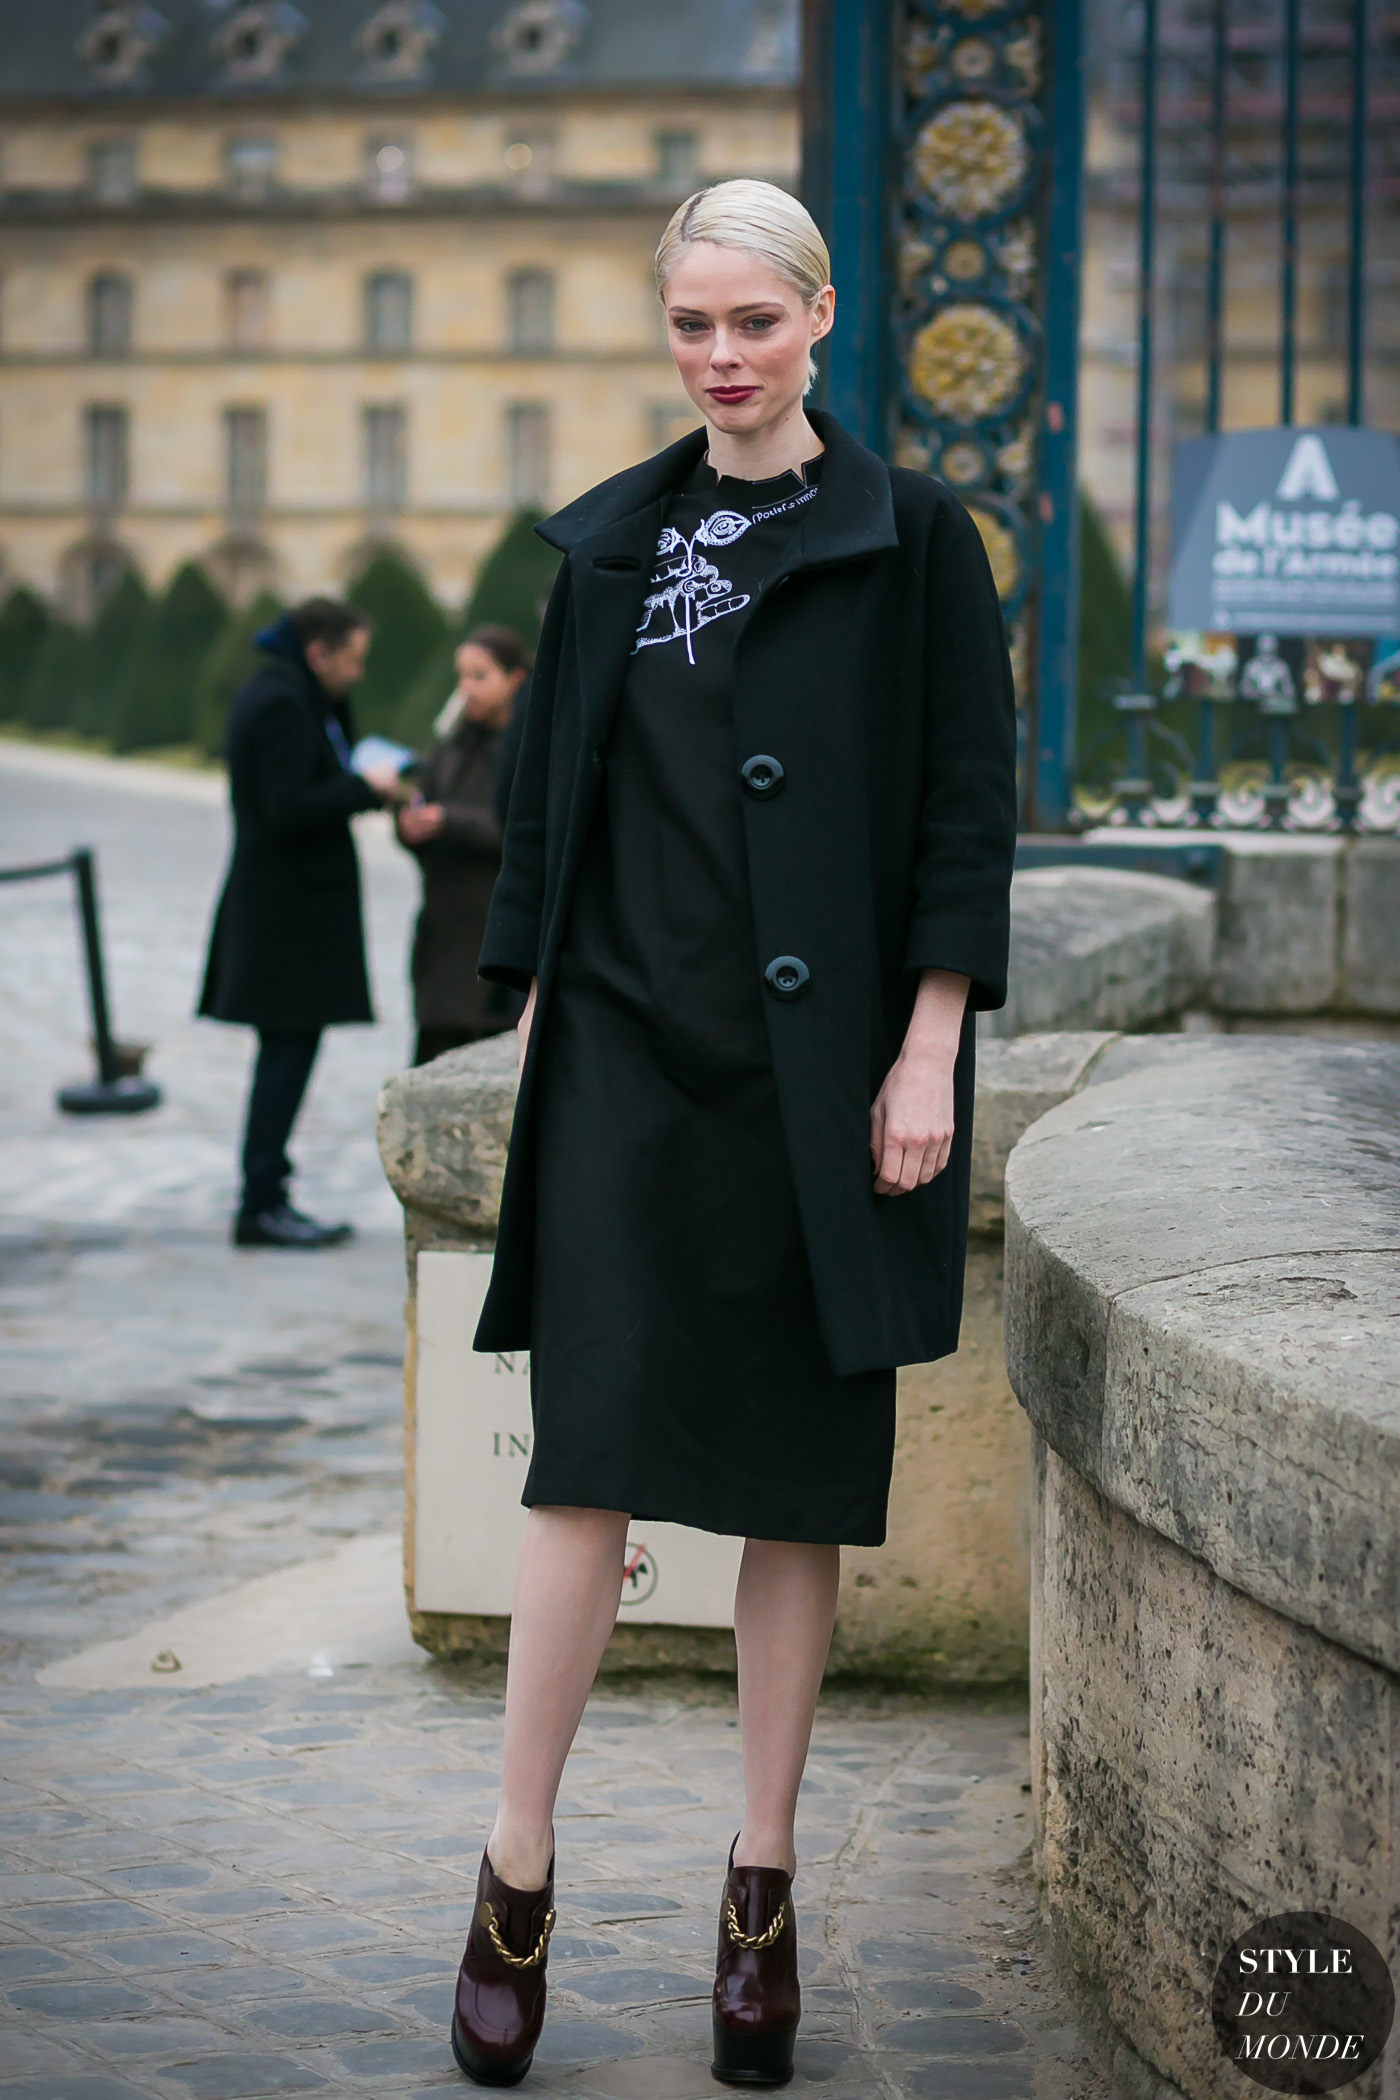 Coco Rocha by STYLEDUMONDE Street Style Fashion Photography